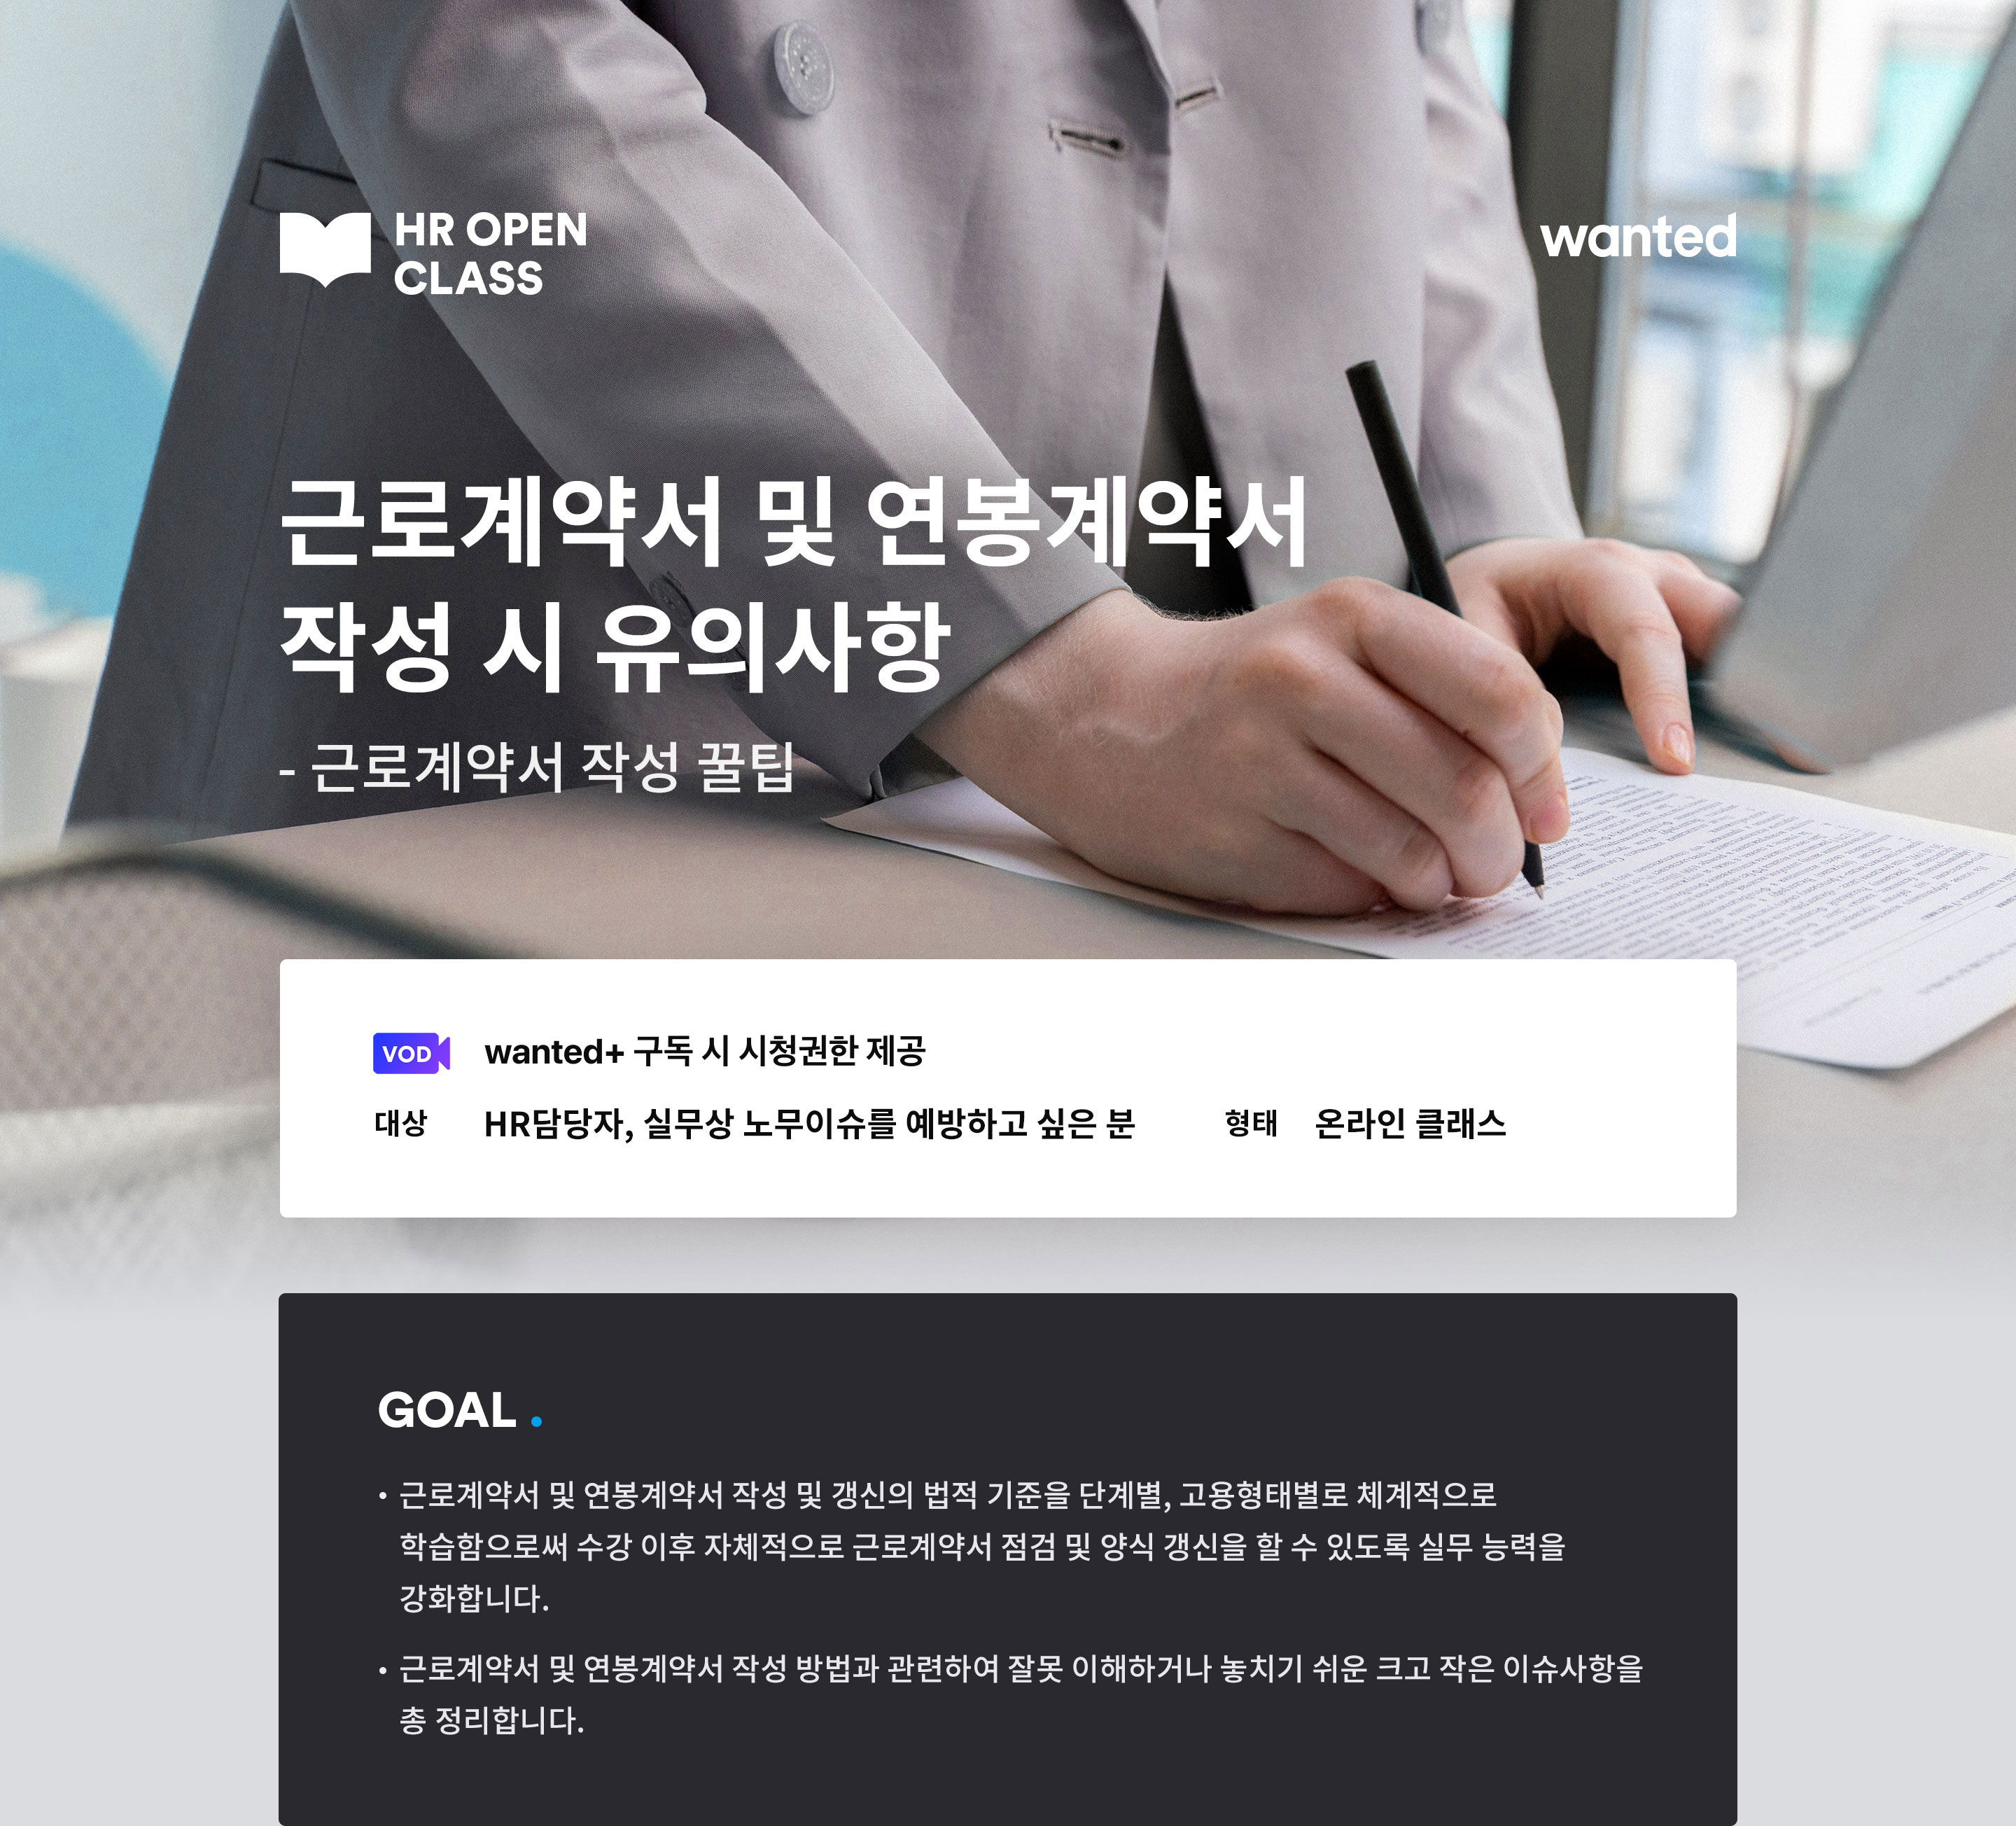 https://static.wanted.co.kr/images/events/1214/8f4b2868.jpg